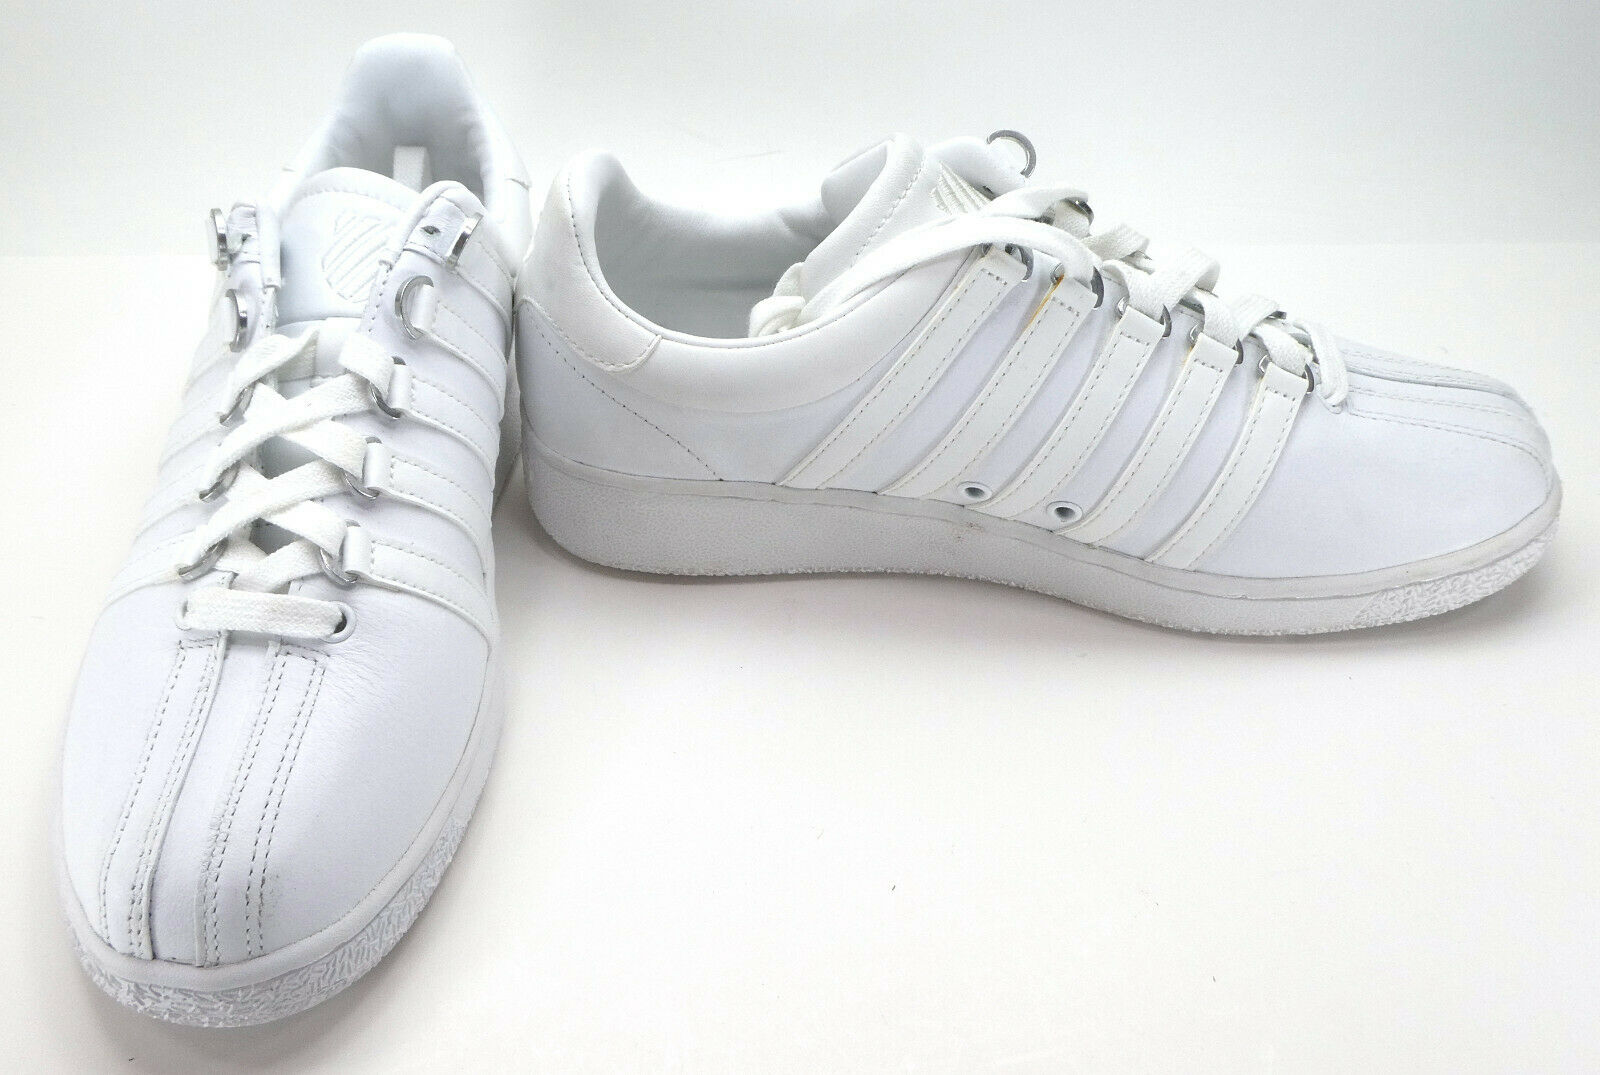 K-Swiss shoes Classic Athletic White Sneakers Size 8.5